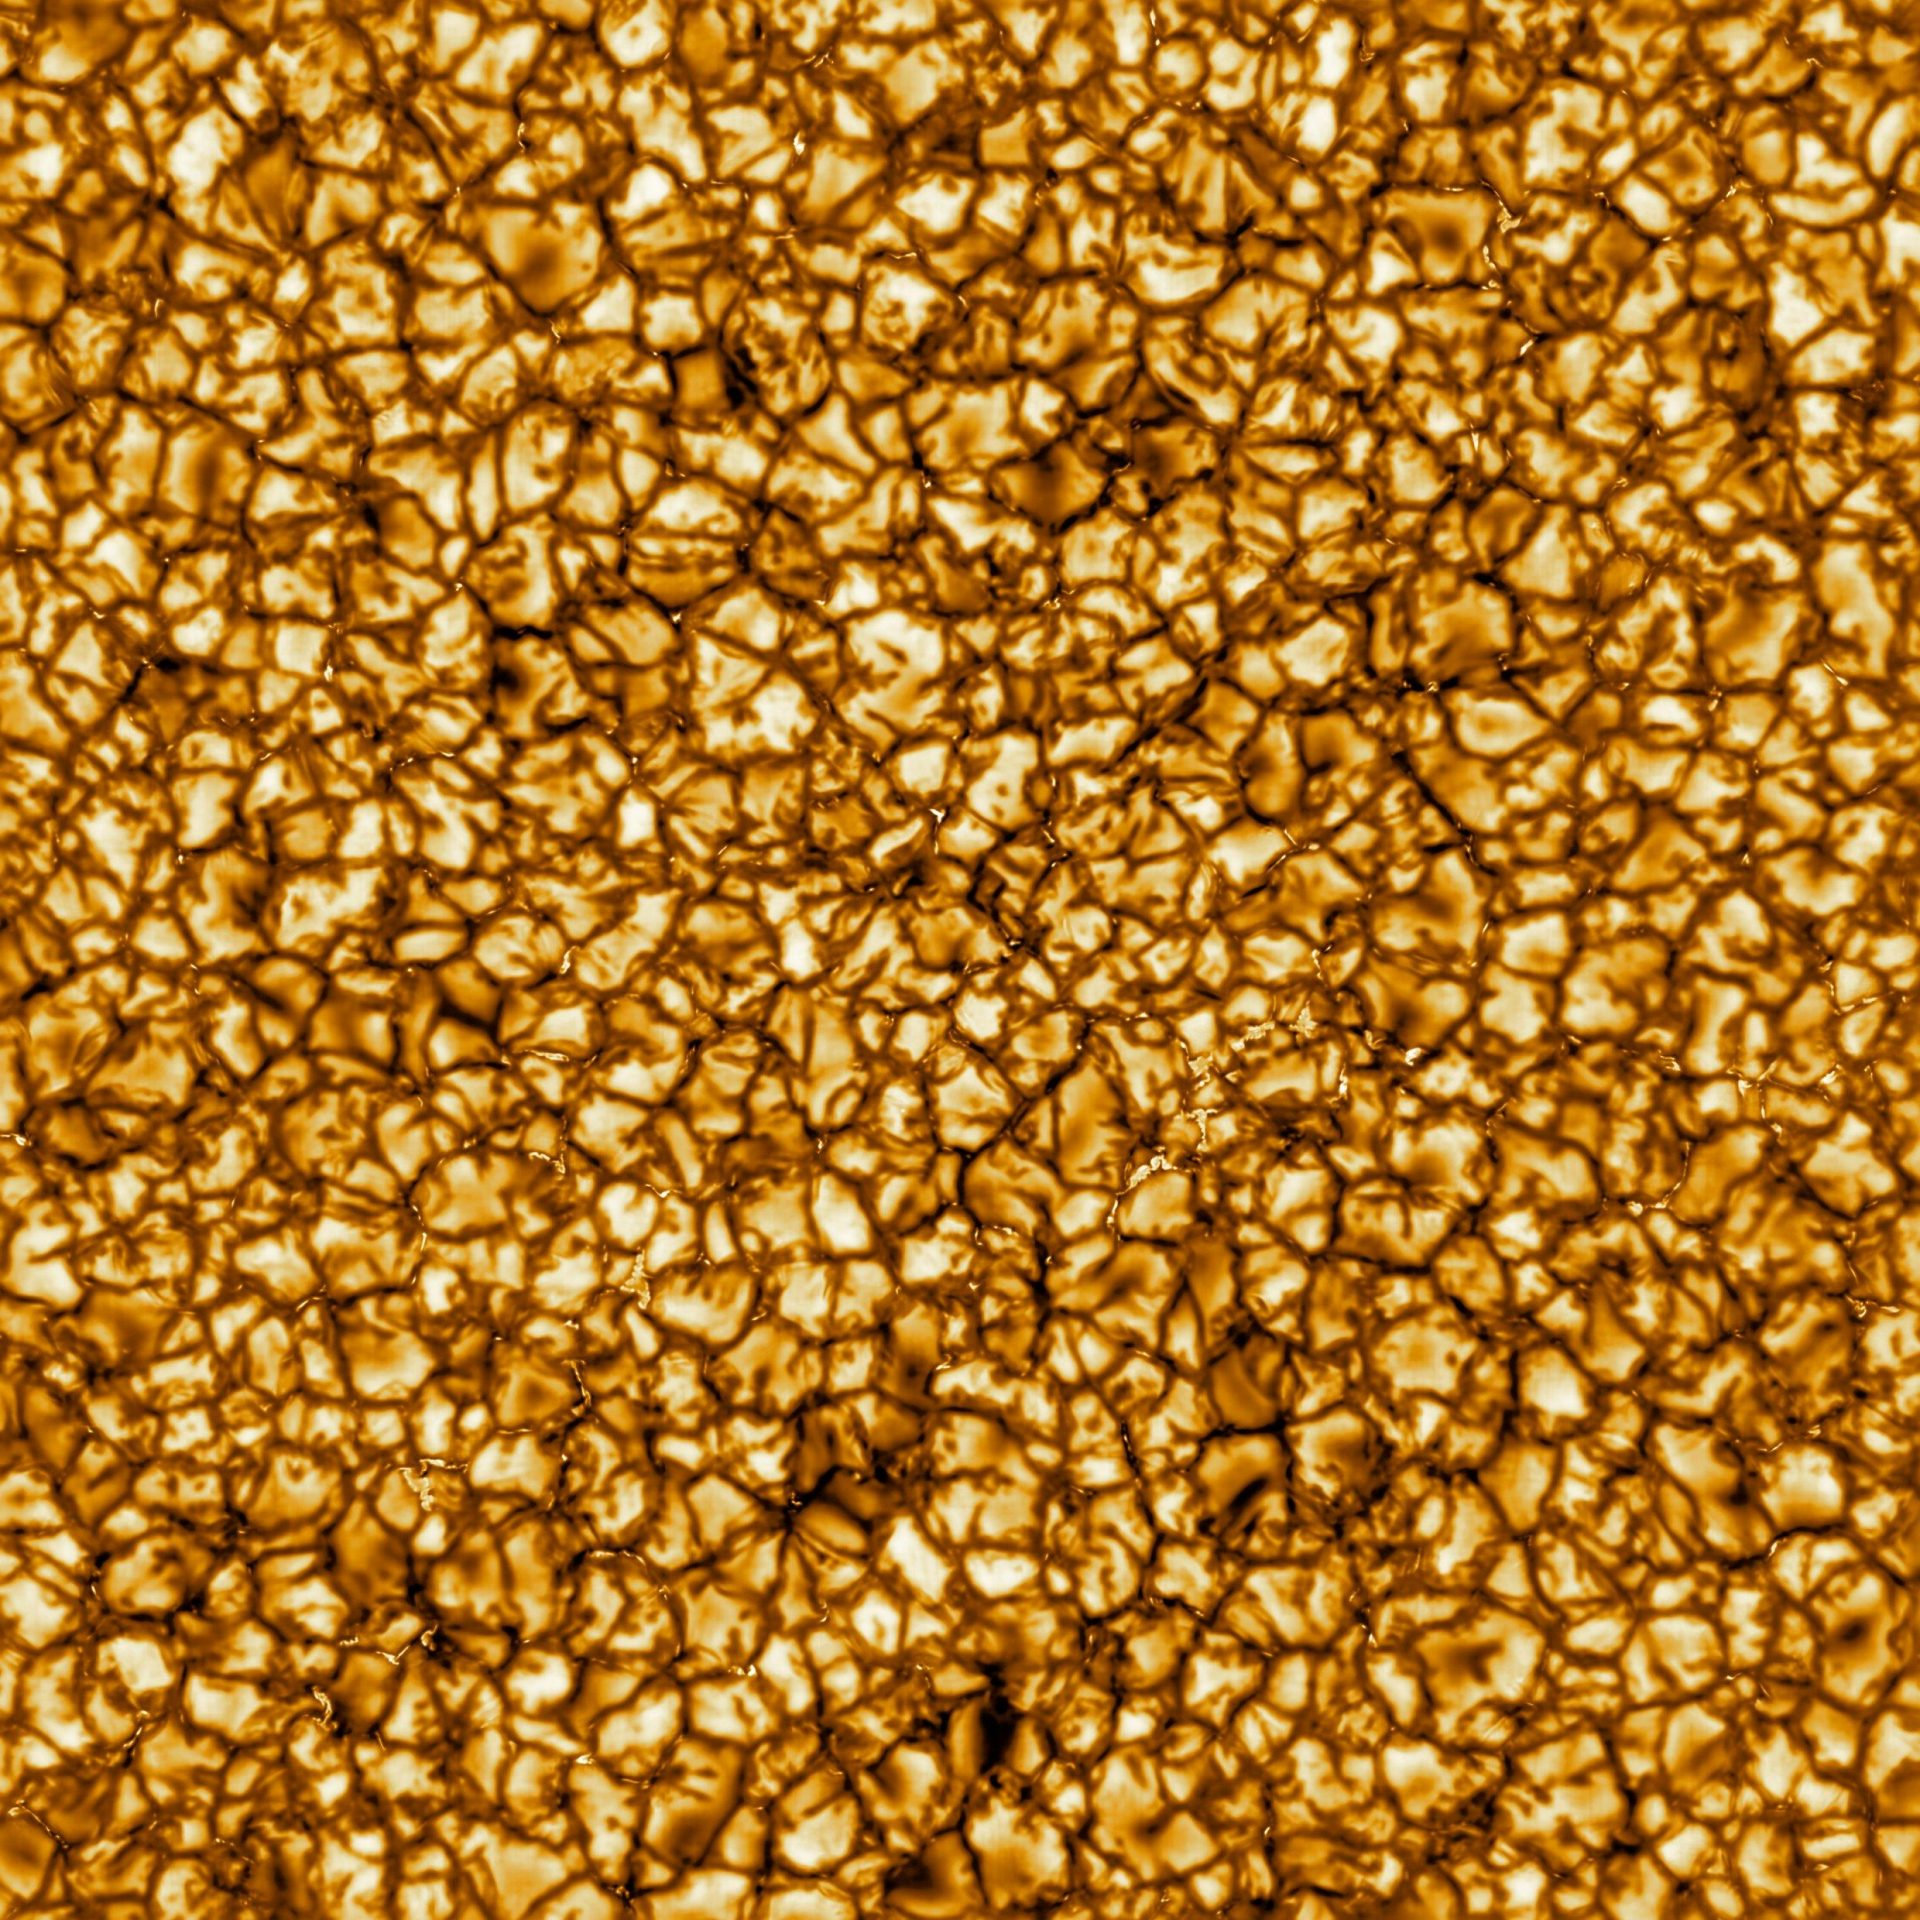 """The Daniel K. Inouye Solar Telescope has produced the highest resolution image of the sun's surface ever taken. In this picture, taken at 789 nanometers (nm), we can see features as small as 30km (18 miles) in size for the first time ever. The image shows a pattern of turbulent, """"boiling"""" gas that covers the entire sun. The cell-like structures -- each about the size of Texas -- are the signature of violent motions that transport heat from the inside of the sun to its surface. Hot solar material (plasma) rises in the bright centers of """"cells,"""" cools off and then sinks below the surface in dark lanes in a process known as convection. In these dark lanes we can also see the tiny, bright markers of magnetic fields. Never before seen to this clarity, these bright specks are thought to channel energy up into the outer layers of the solar atmosphere called the corona. These bright spots may be at the core of why the solar corona is more than a million degrees. (Image: NSO/AURA/NSF)"""